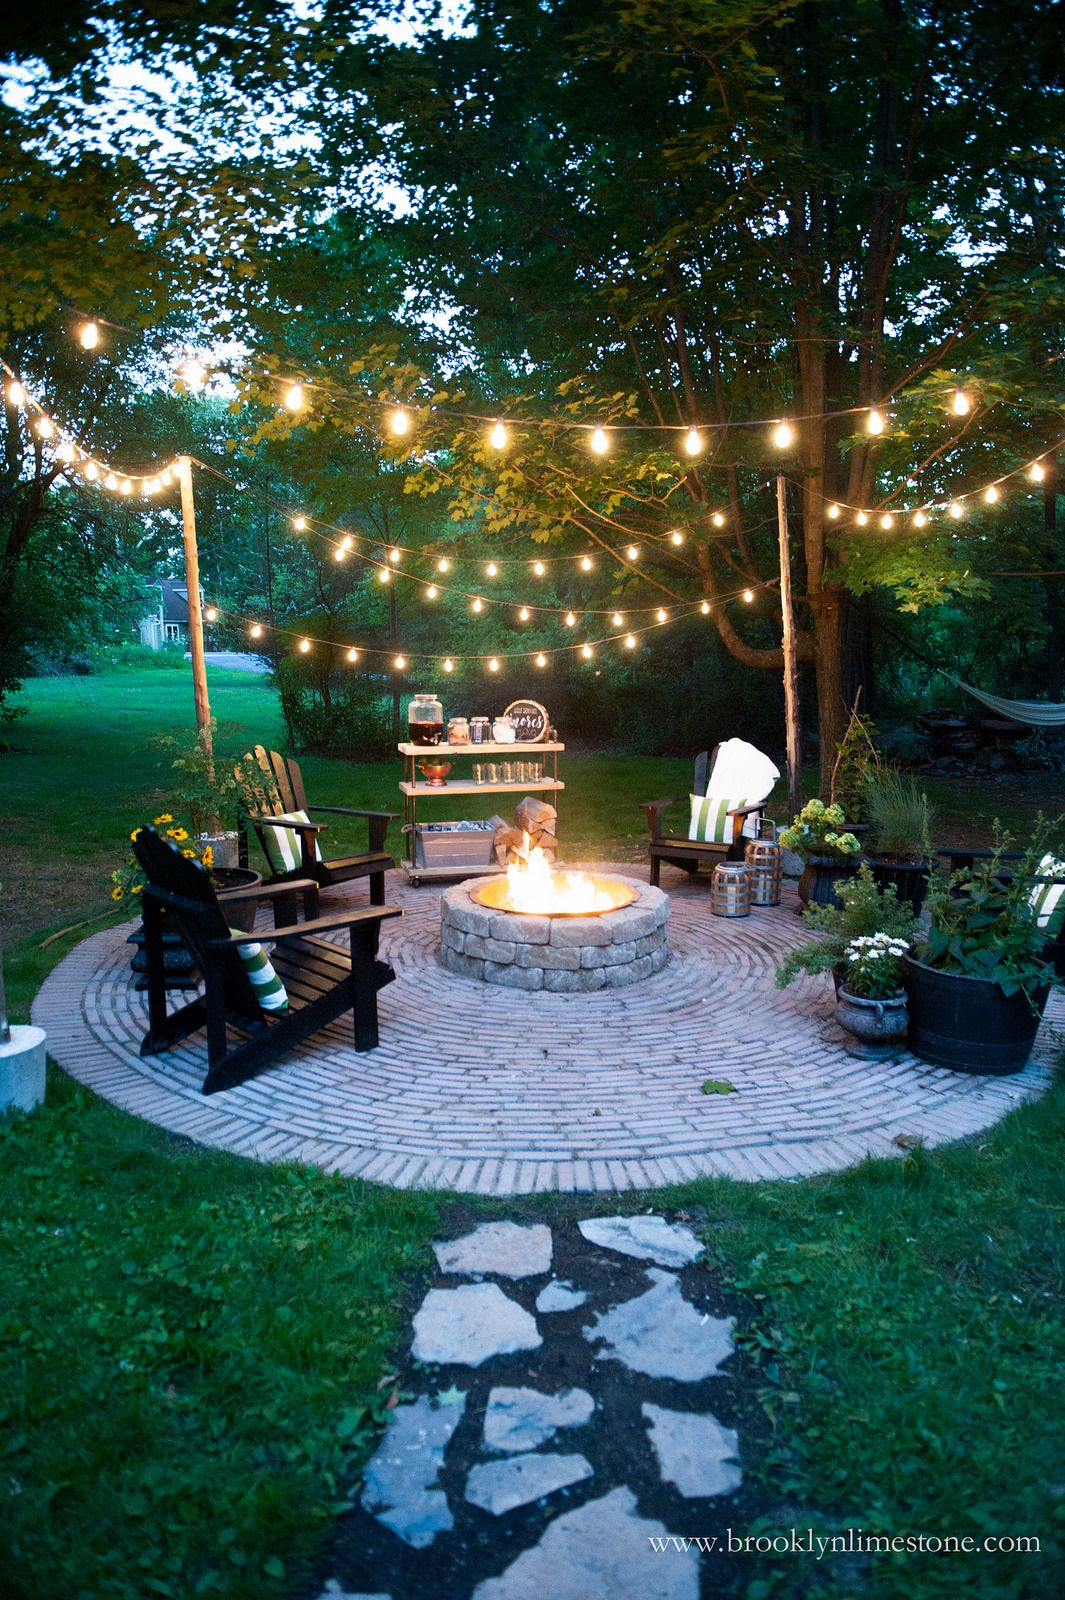 Landscape Lighting Perfection Of Yards As summer days wind down, look forward to enjoying fall days and nights  around the fire pit. Brooklyn Limestone has us swooning for this circular  fire pit ...